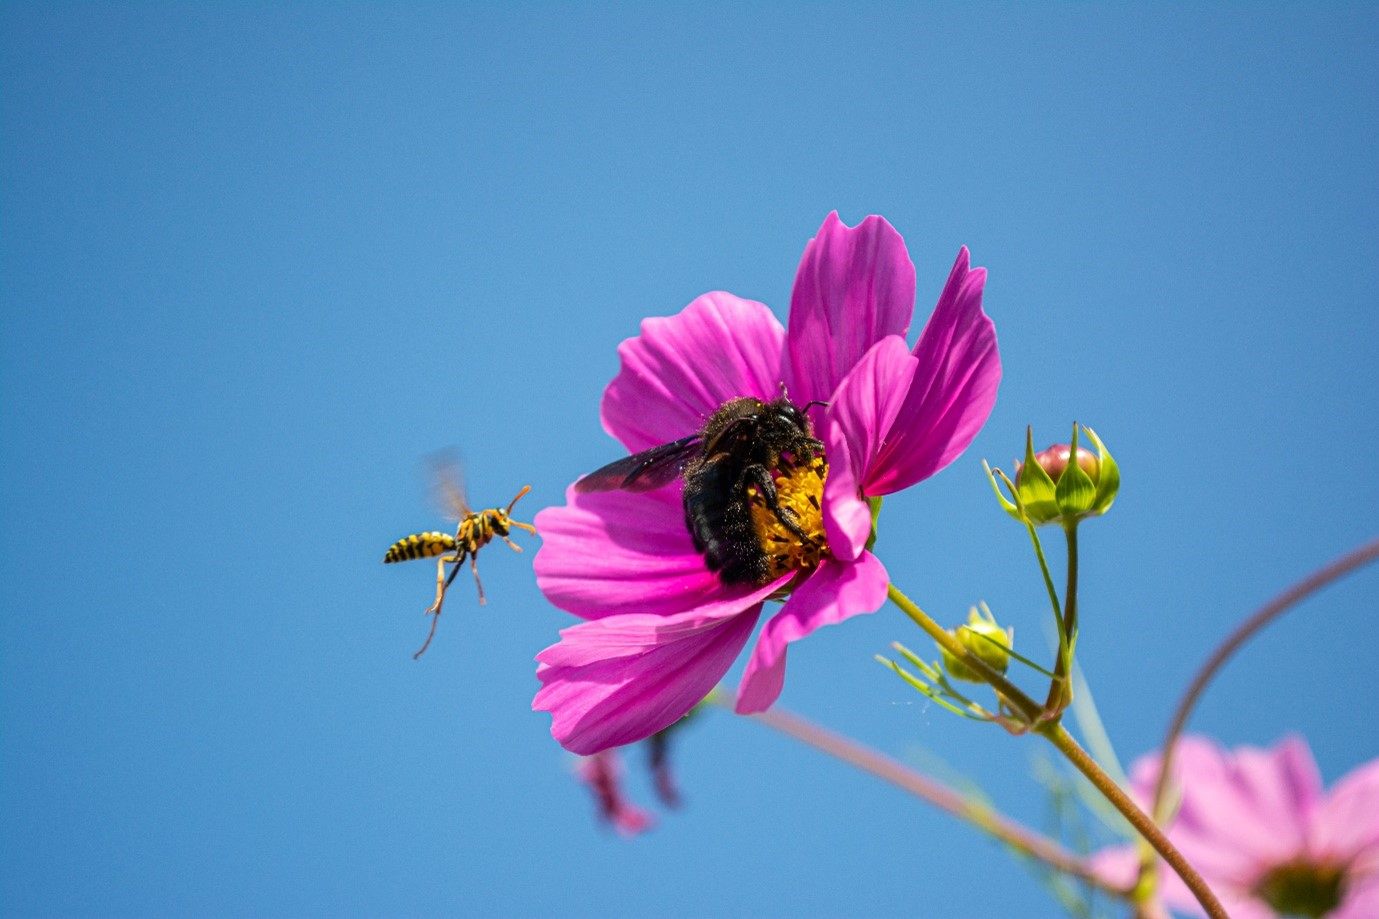 insects on a flower